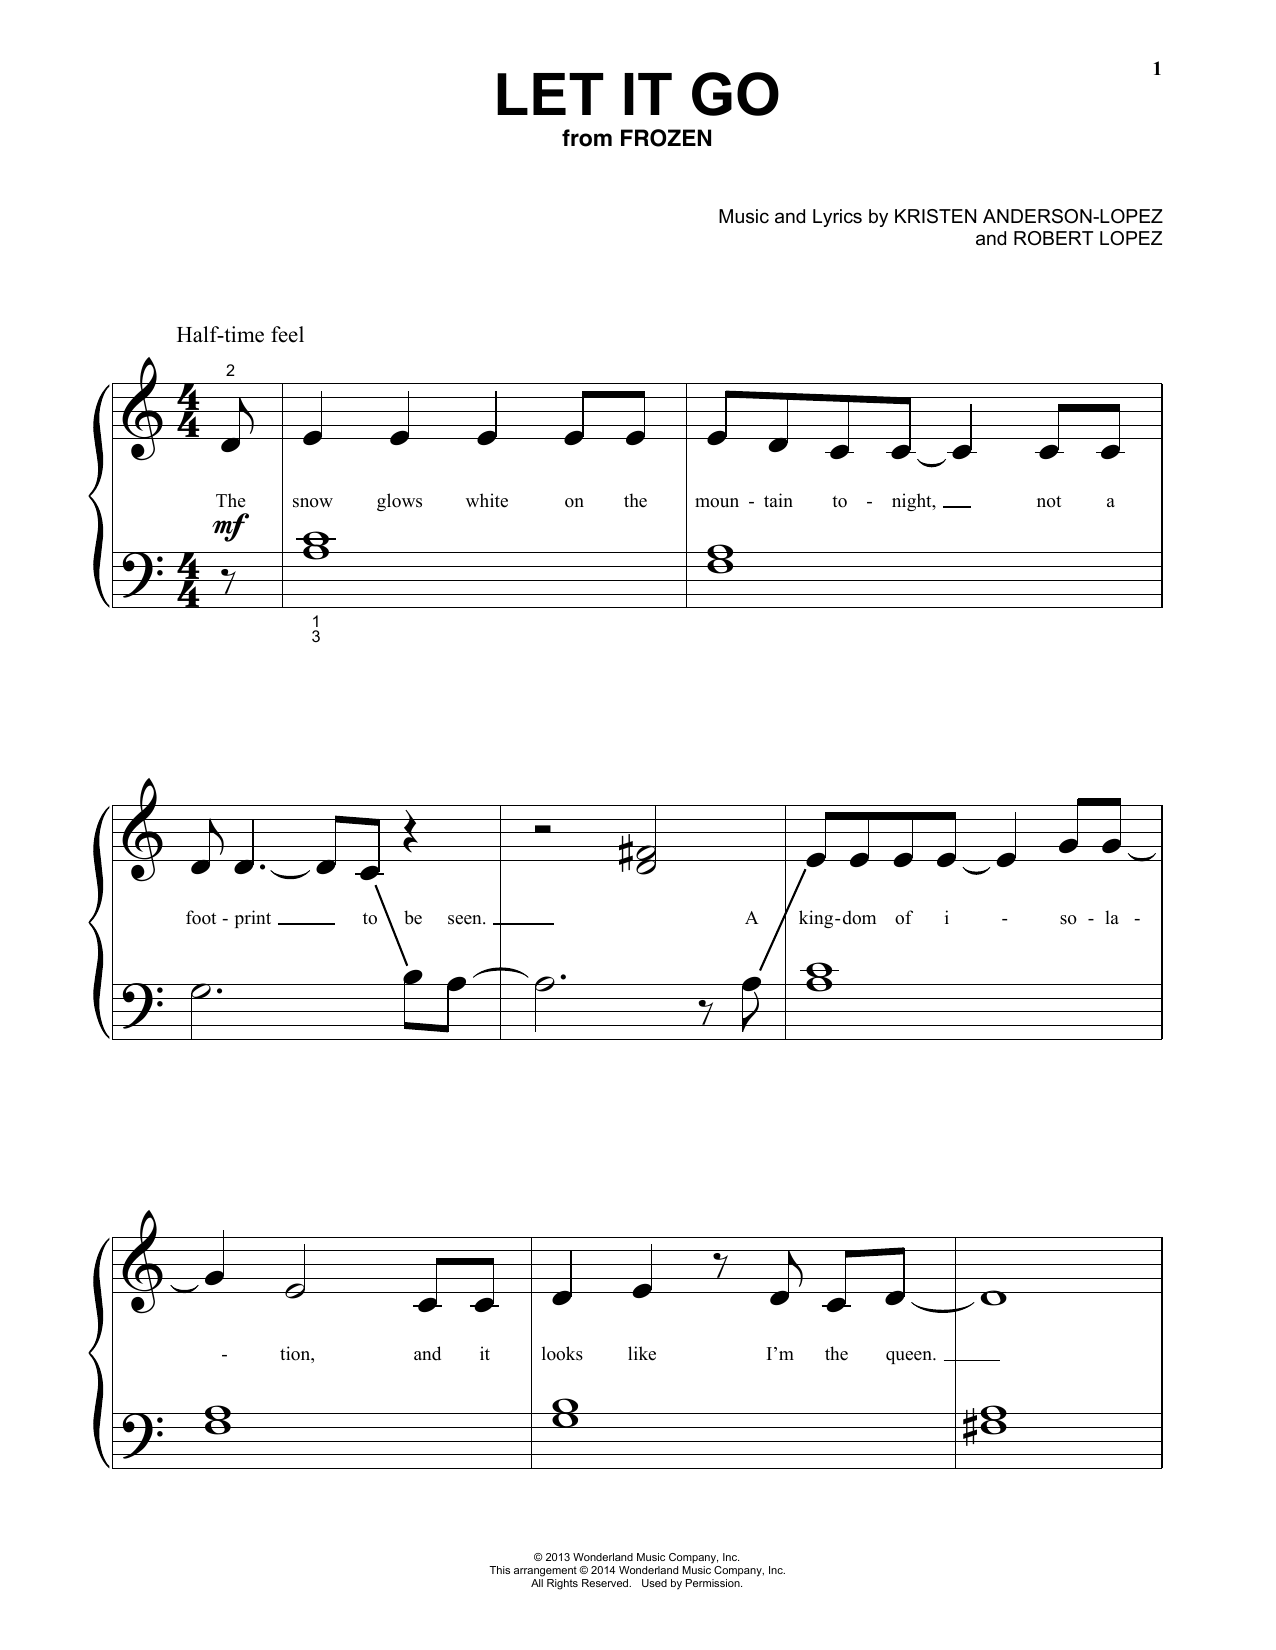 It is an image of Free Printable Disney Sheet Music for little mermaid